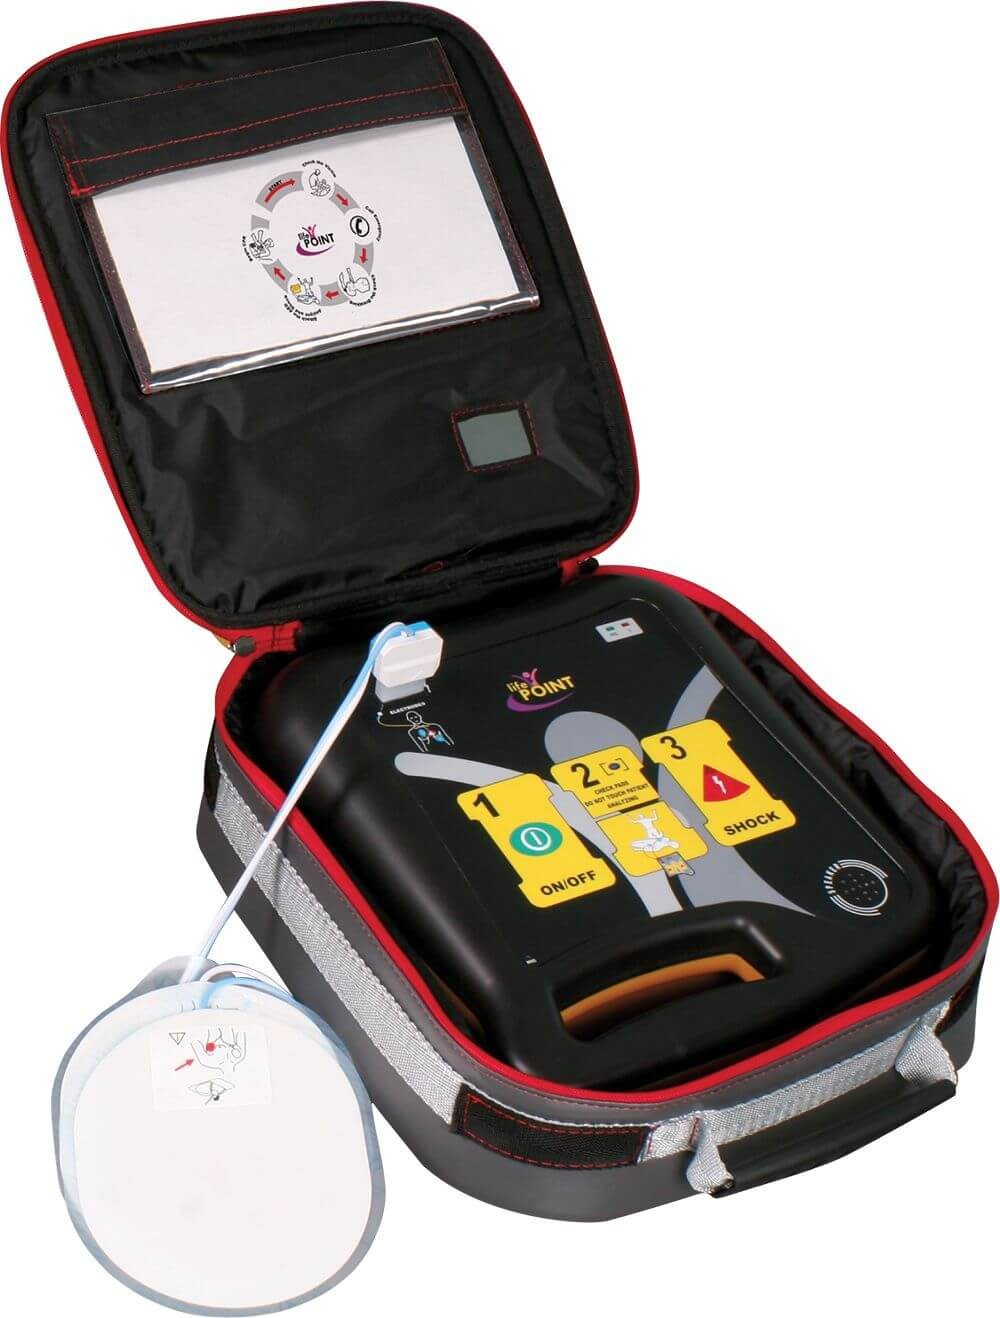 Defibrillators | First Aid | Bull Products